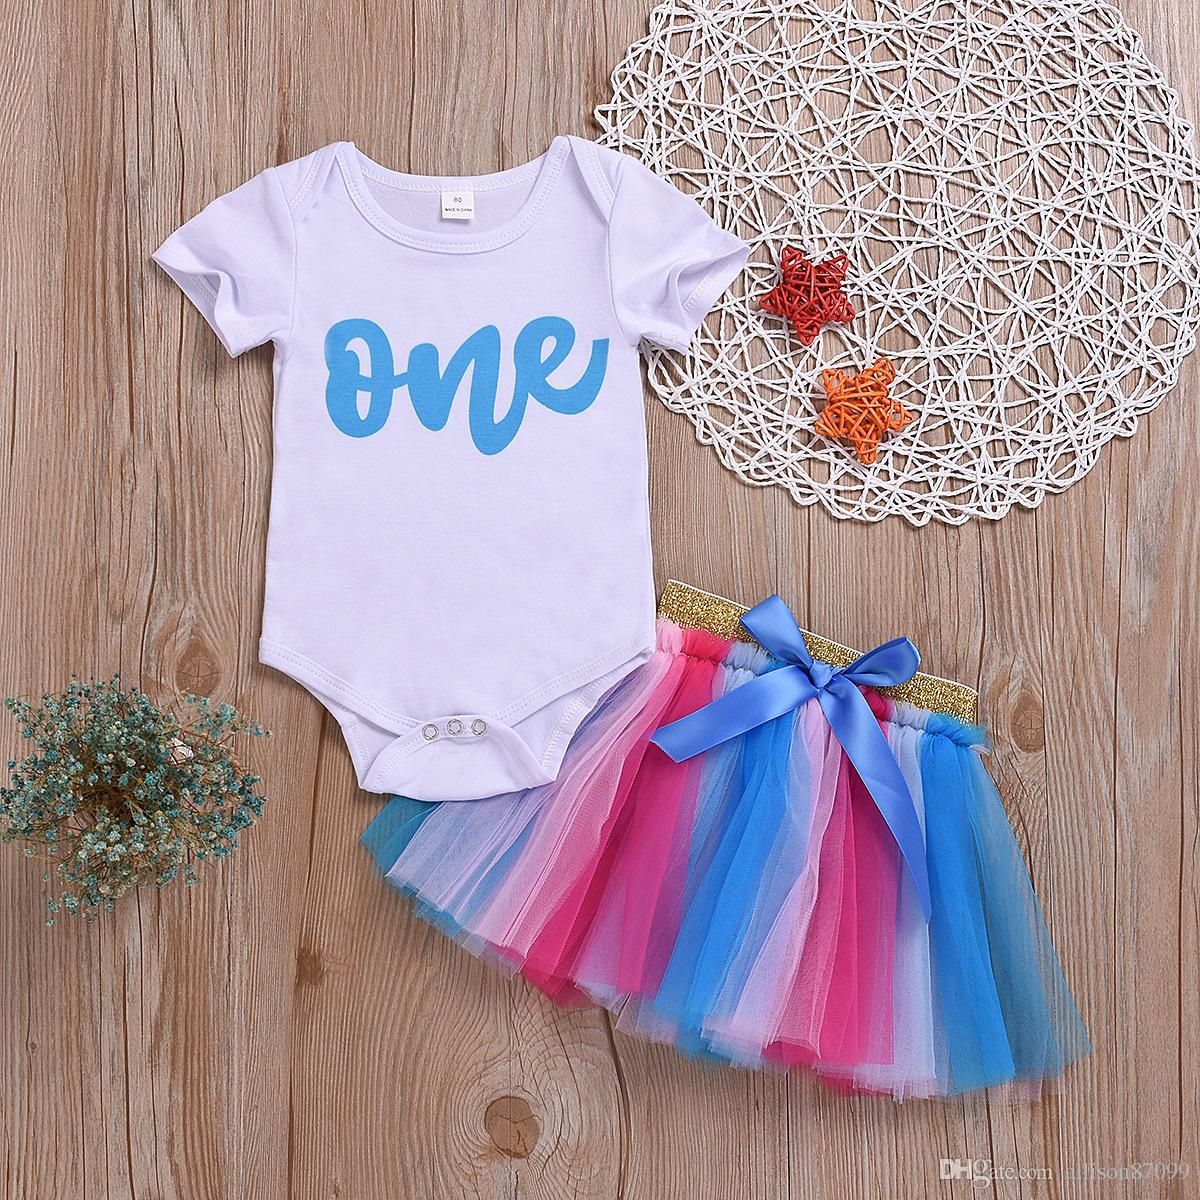 81fd164fa 2019 Ins Cute Baby Girl Clothes Outfits ONE Letters Bodysuit Romper ...